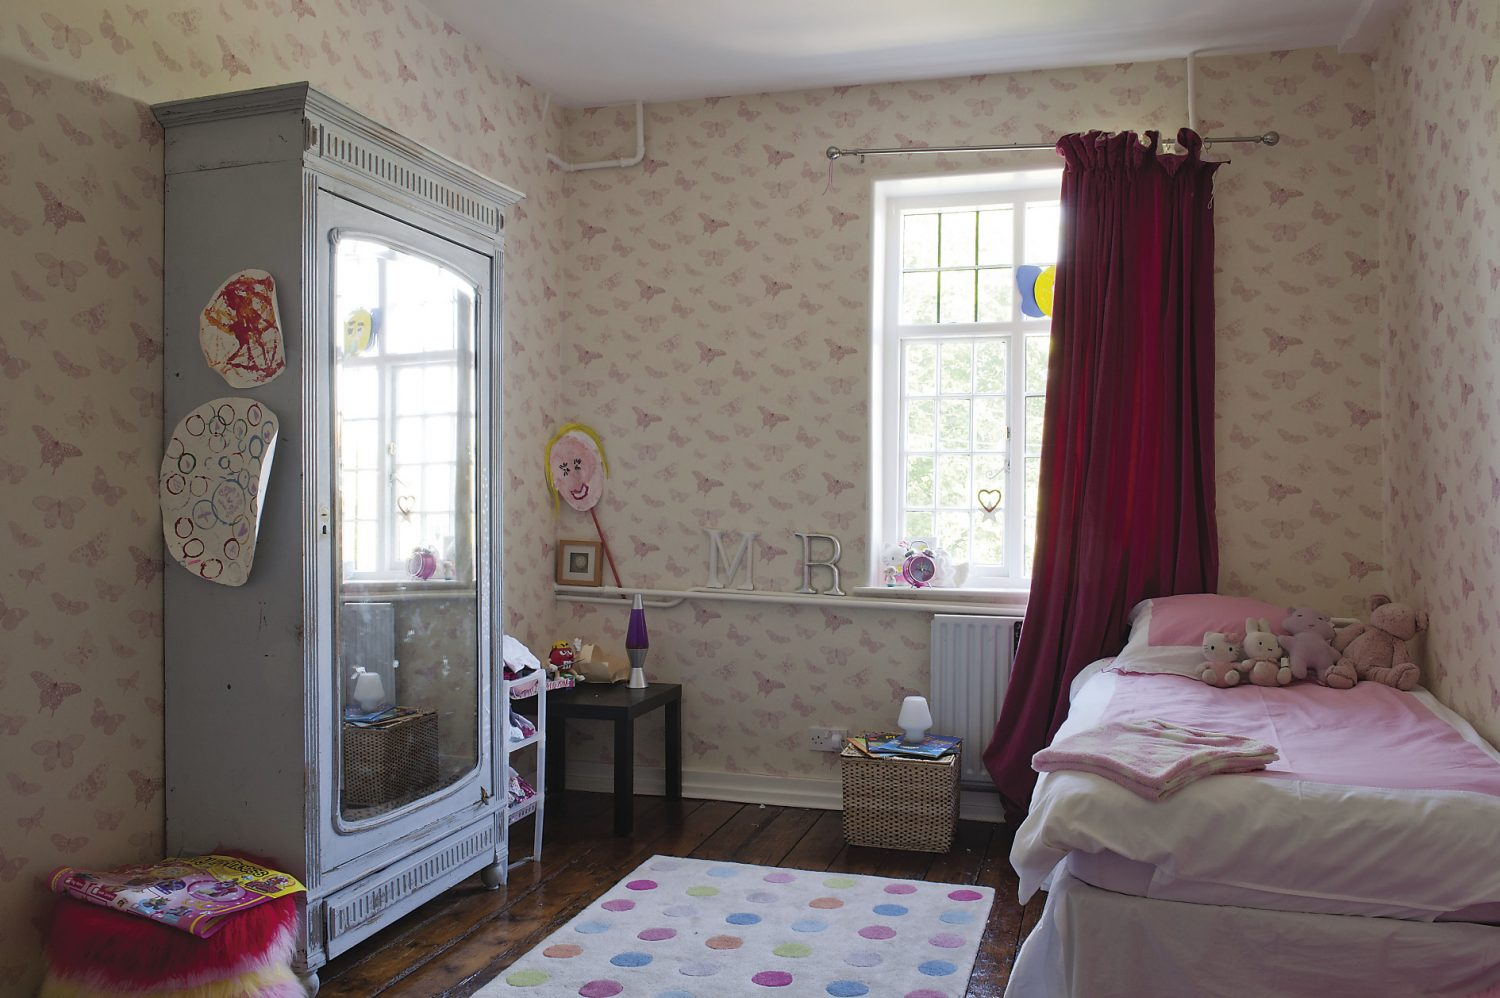 The younger children's bedrooms and bathrooms are grouped together and close to the panelled playroom